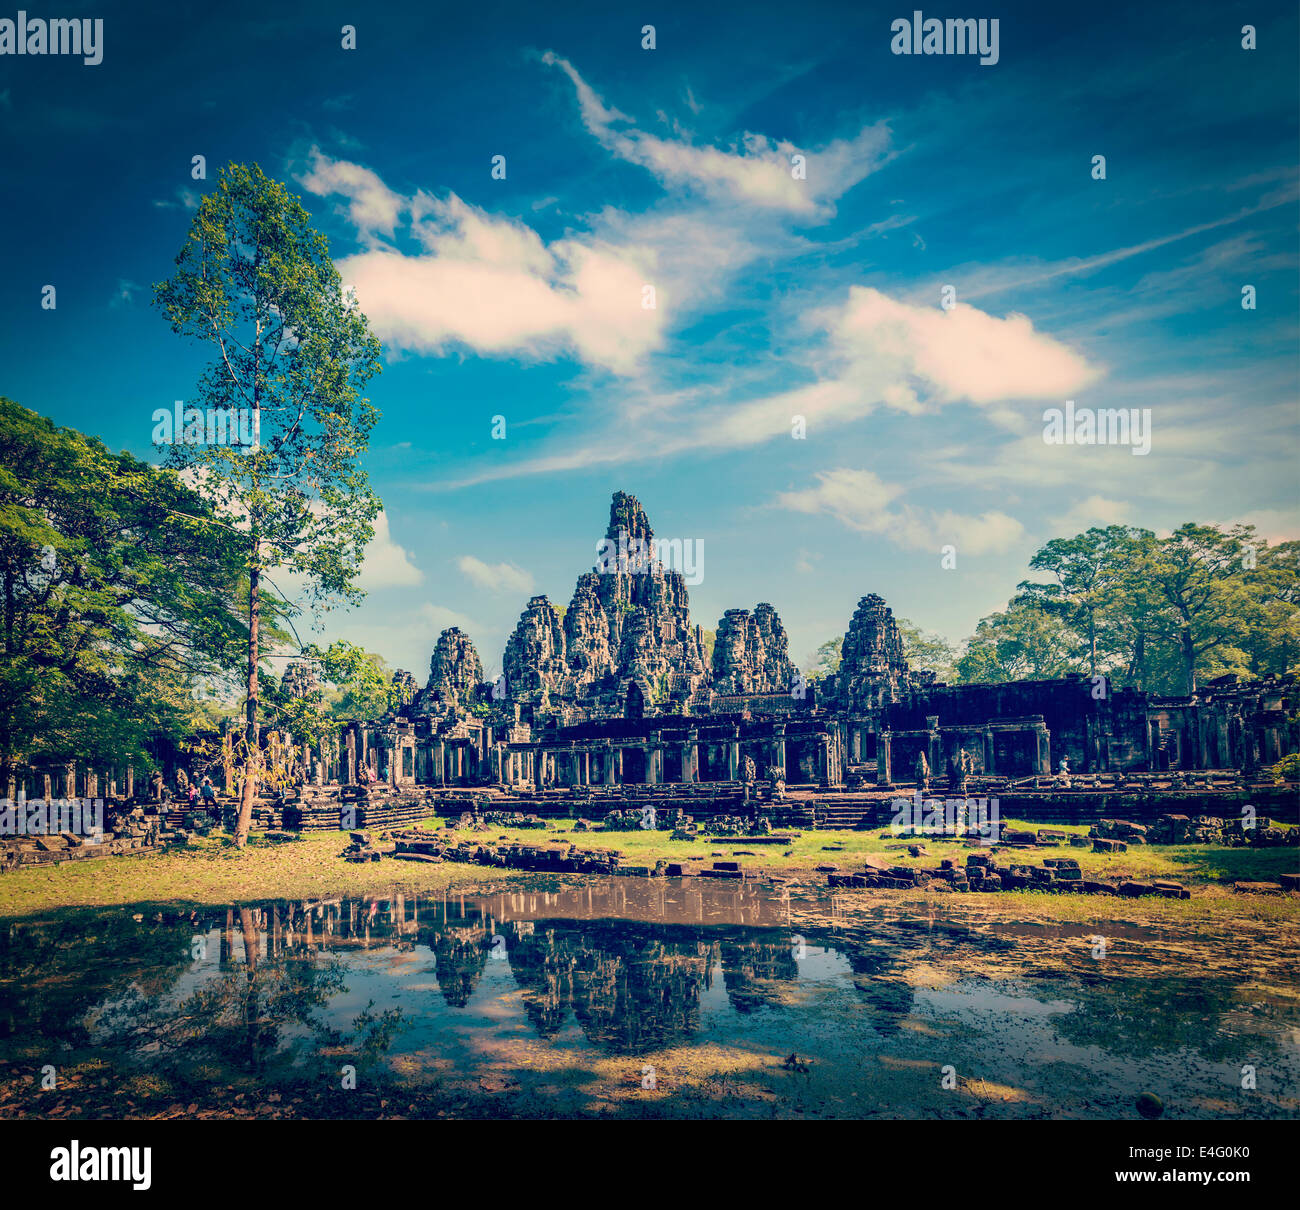 Vintage retro effect filtered hipster style travel image of Bayon temple, Angkor Thom, Cambodia - Stock Image